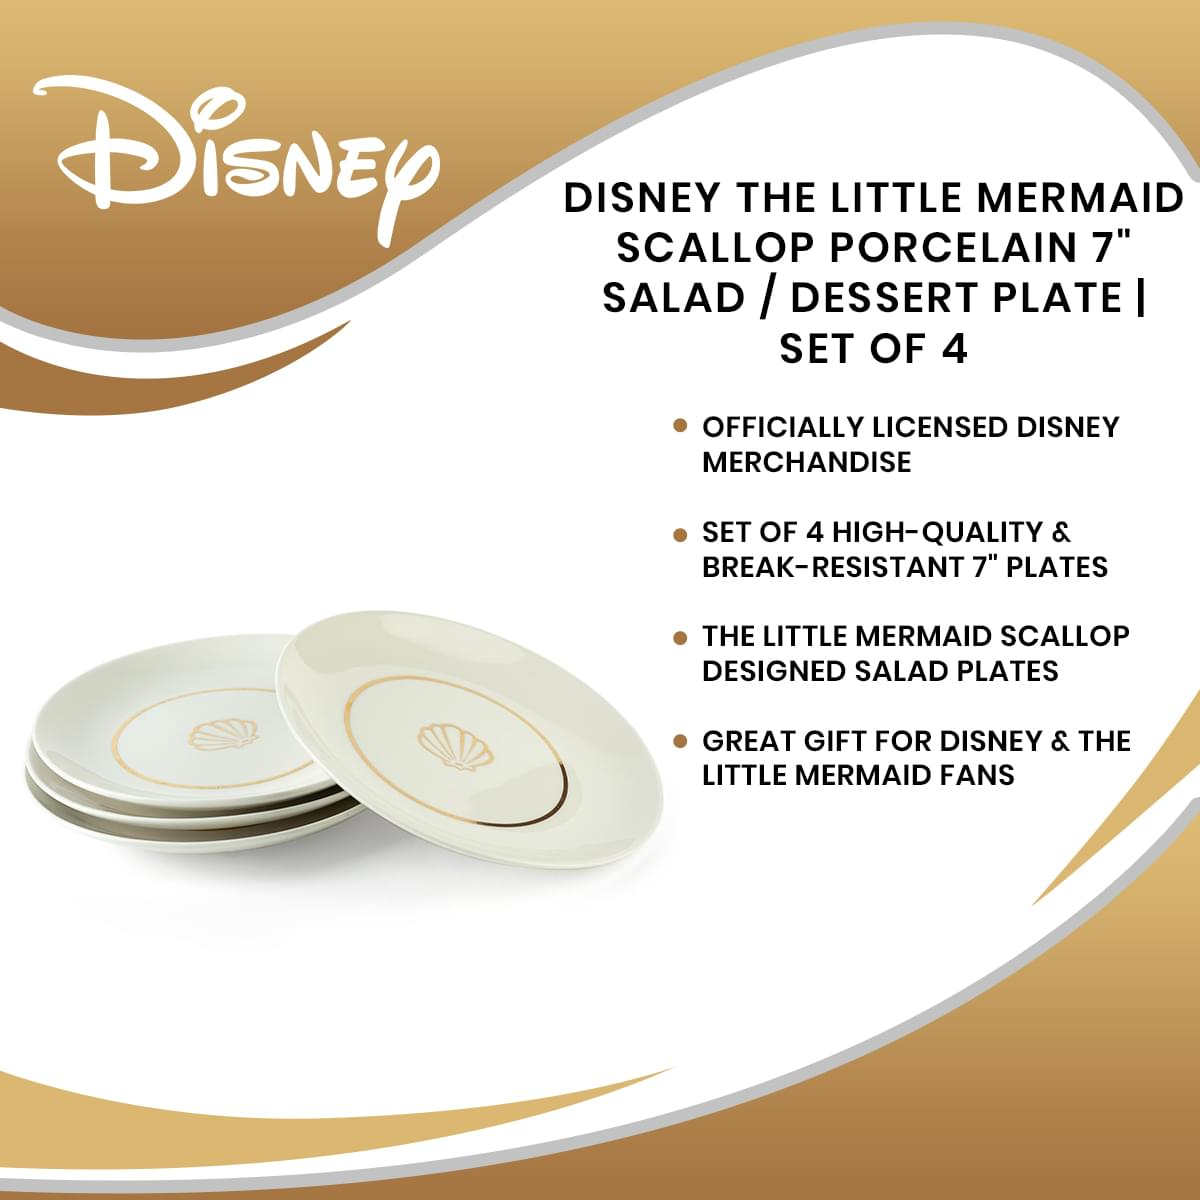 "Disney The Little Mermaid Scallop Porcelain 7"" Salad / Dessert Plate 